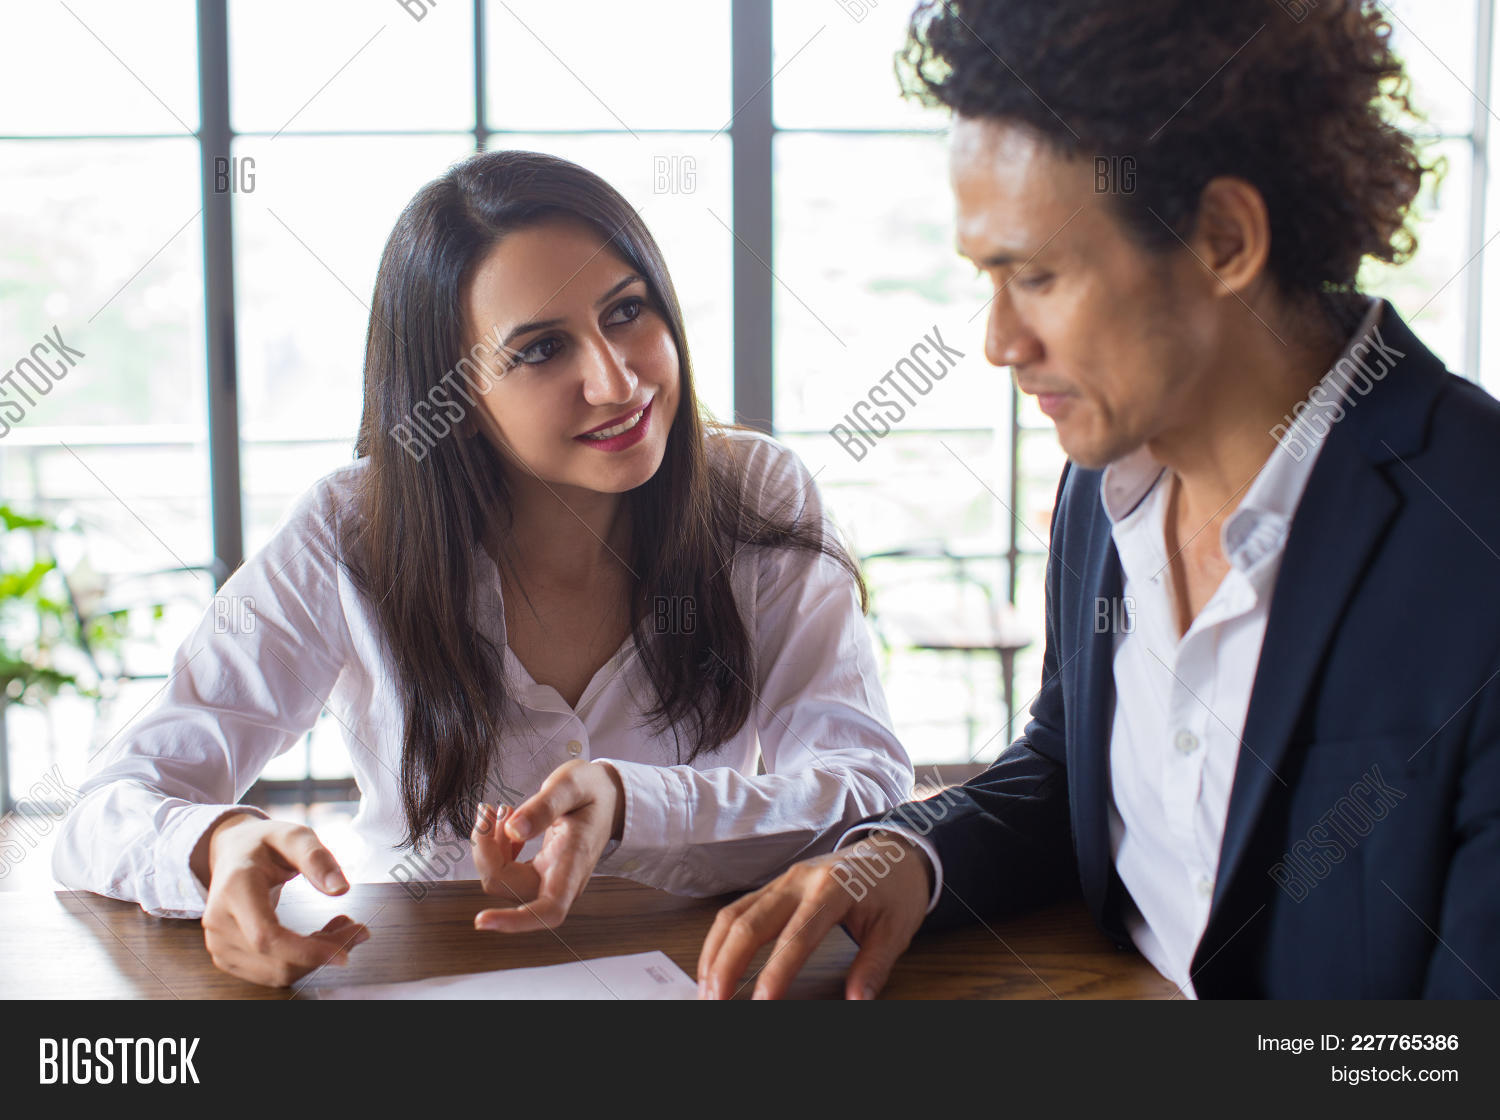 Business partner dating site